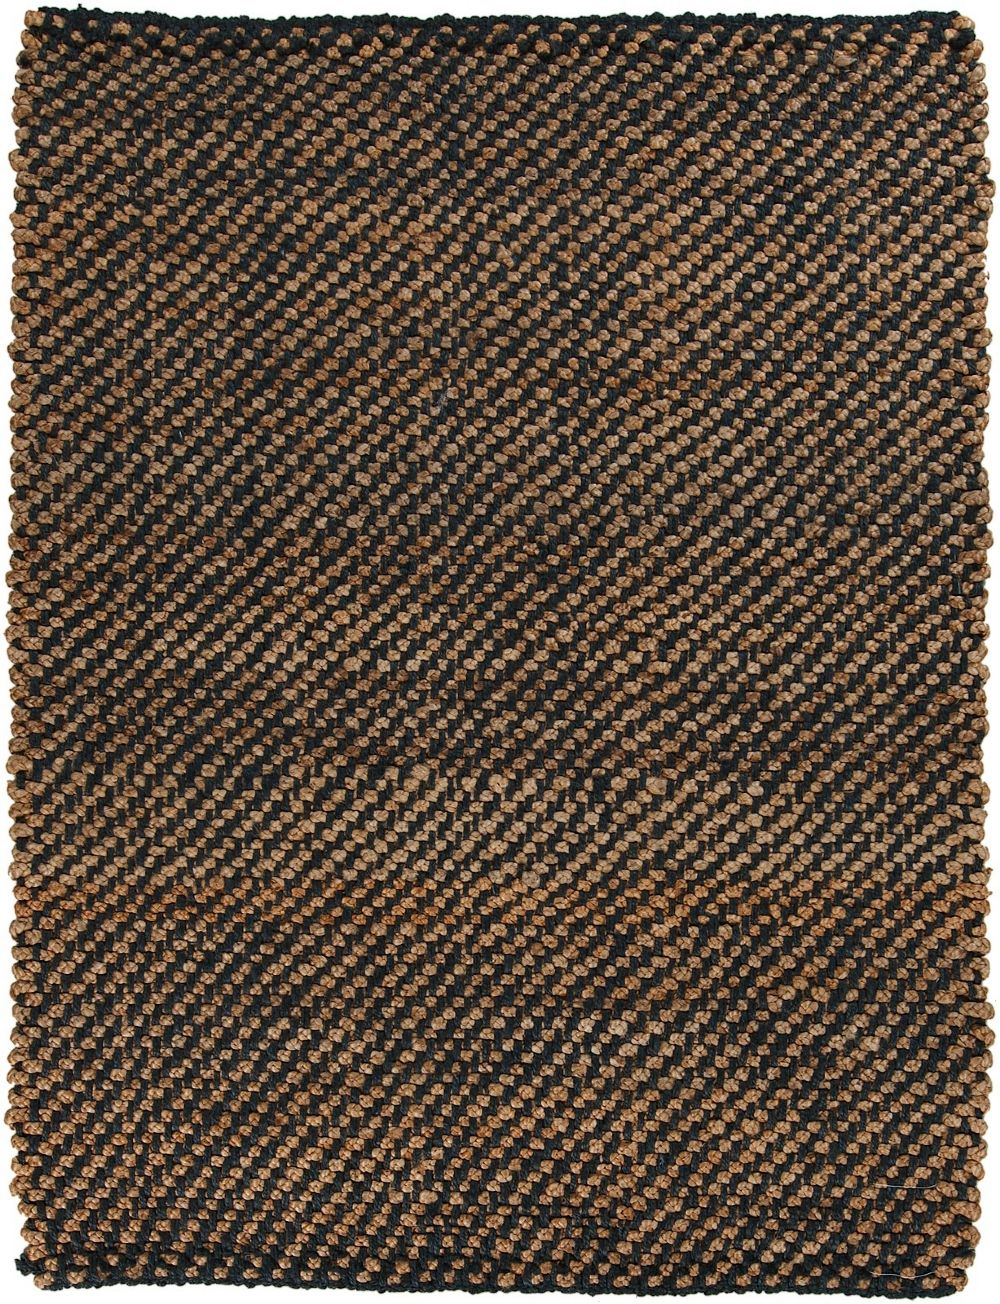 surya reeds natural fiber area rug collection